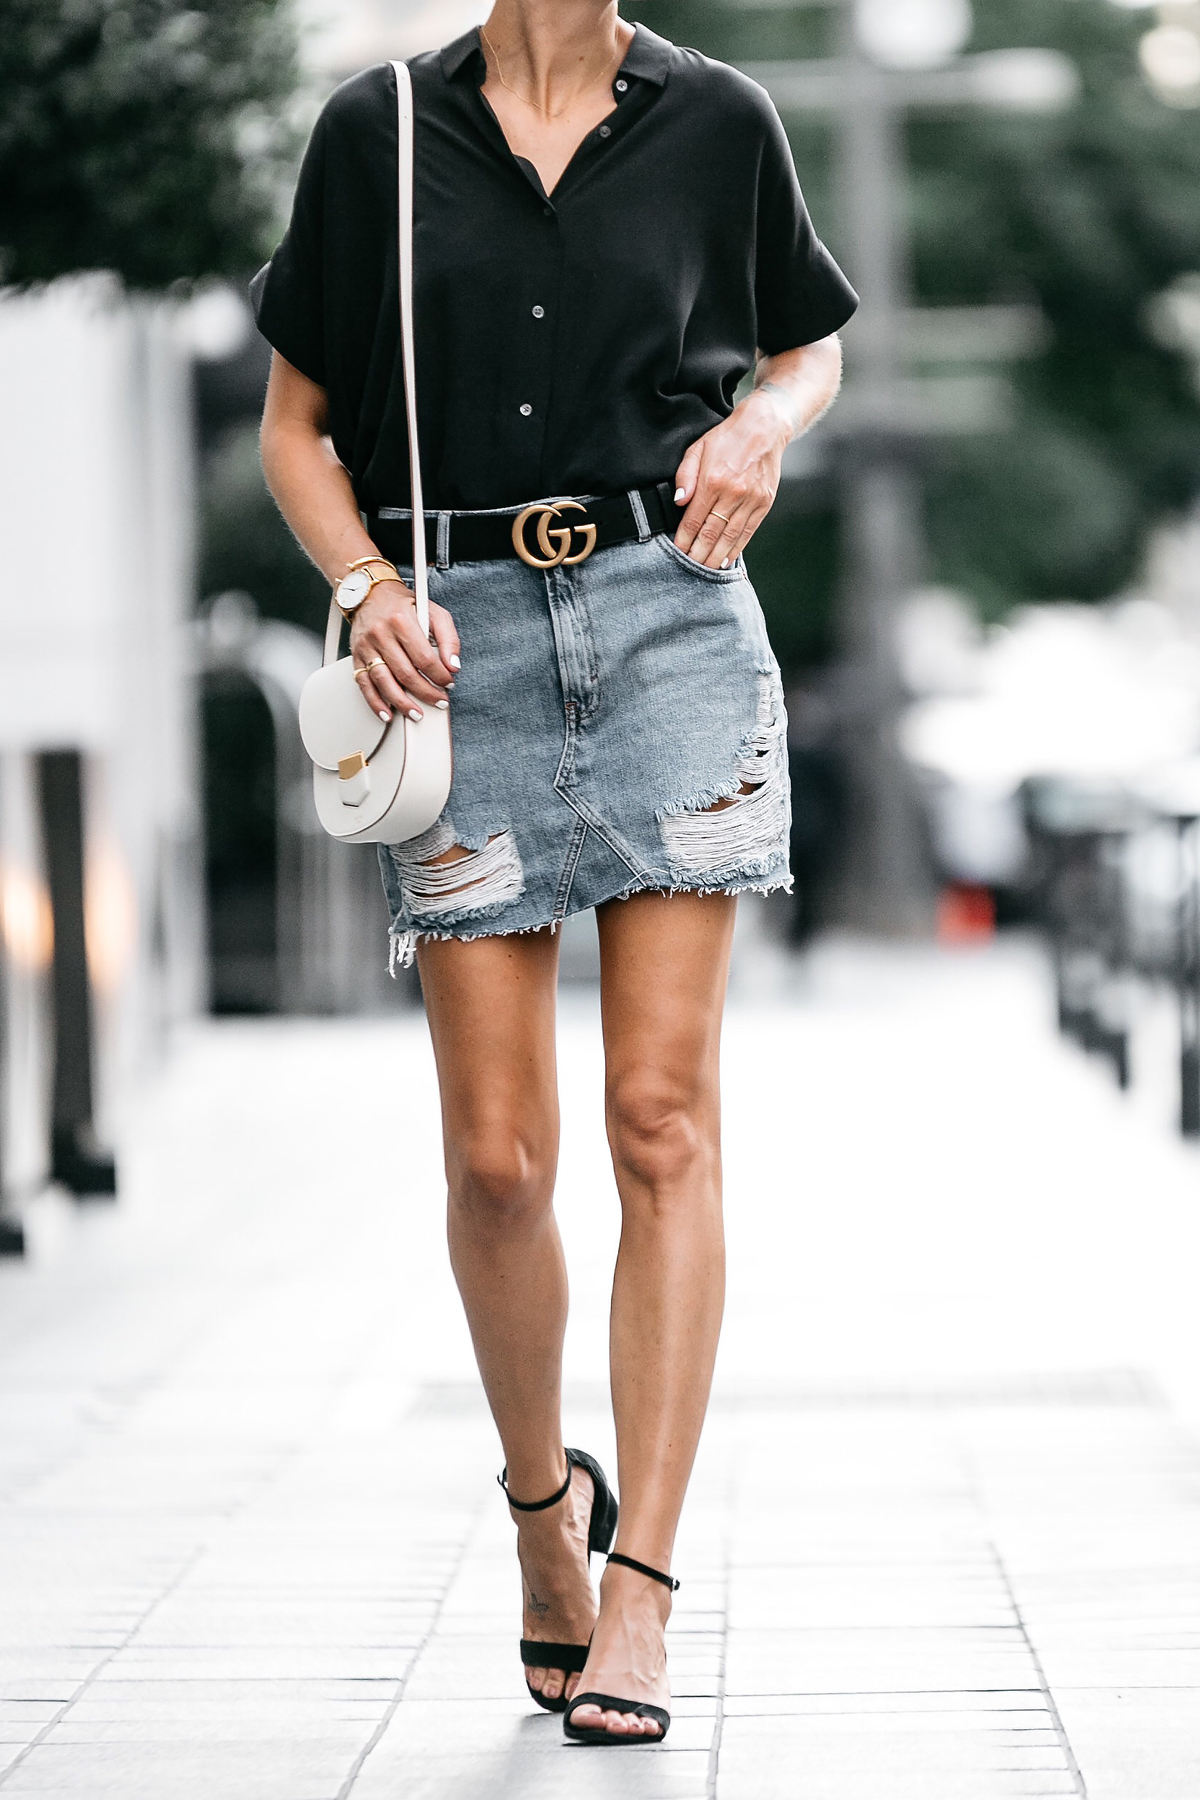 Everlane Black Short Sleeve Shirt Topshop Ripped Denim Skirt Outfit Gucci  Marmont Belt Celine Trotteur White 1d594514f7